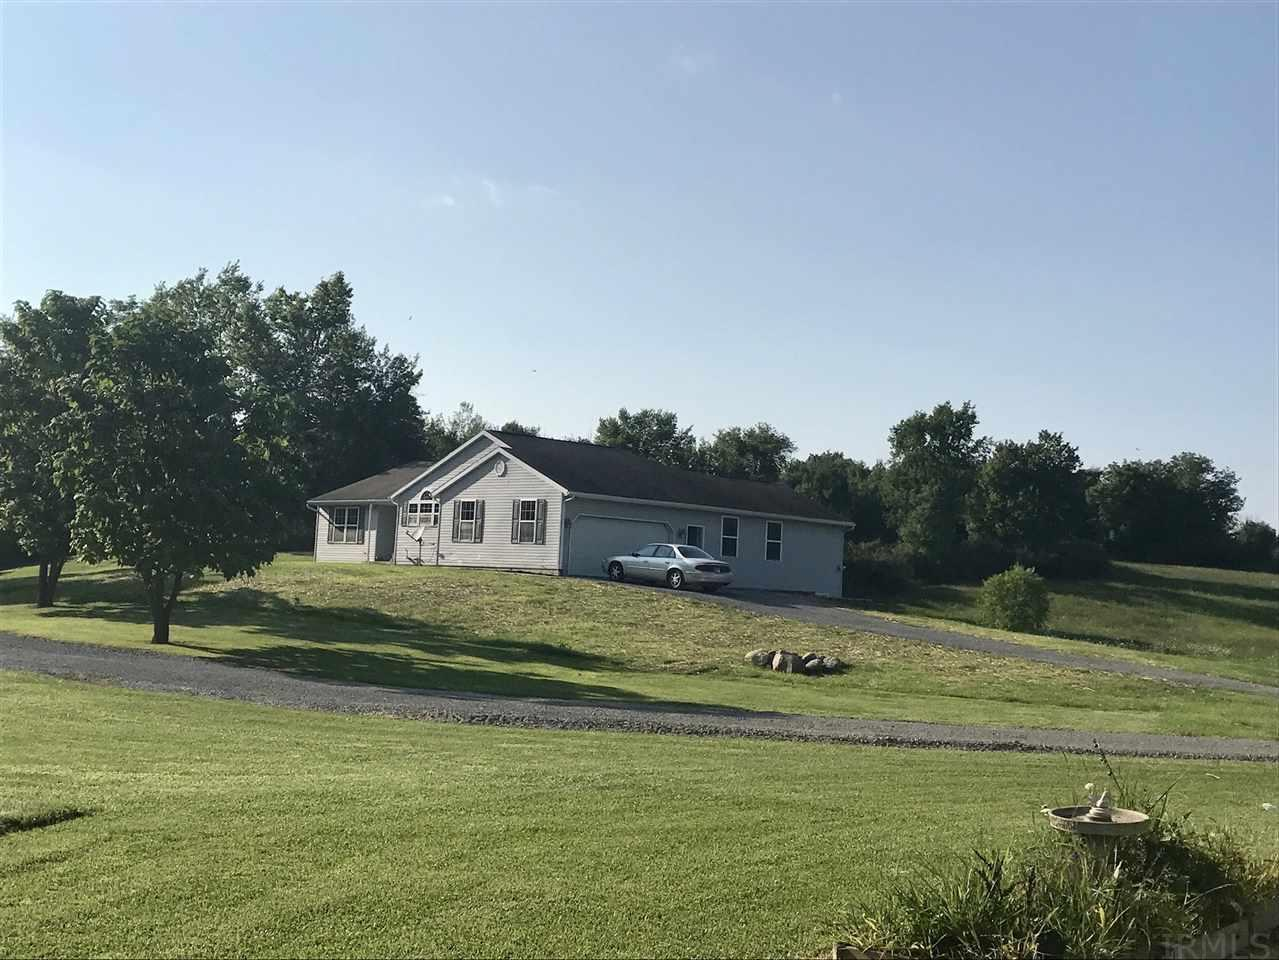 5150 N 125 W, Columbia City, IN 46725